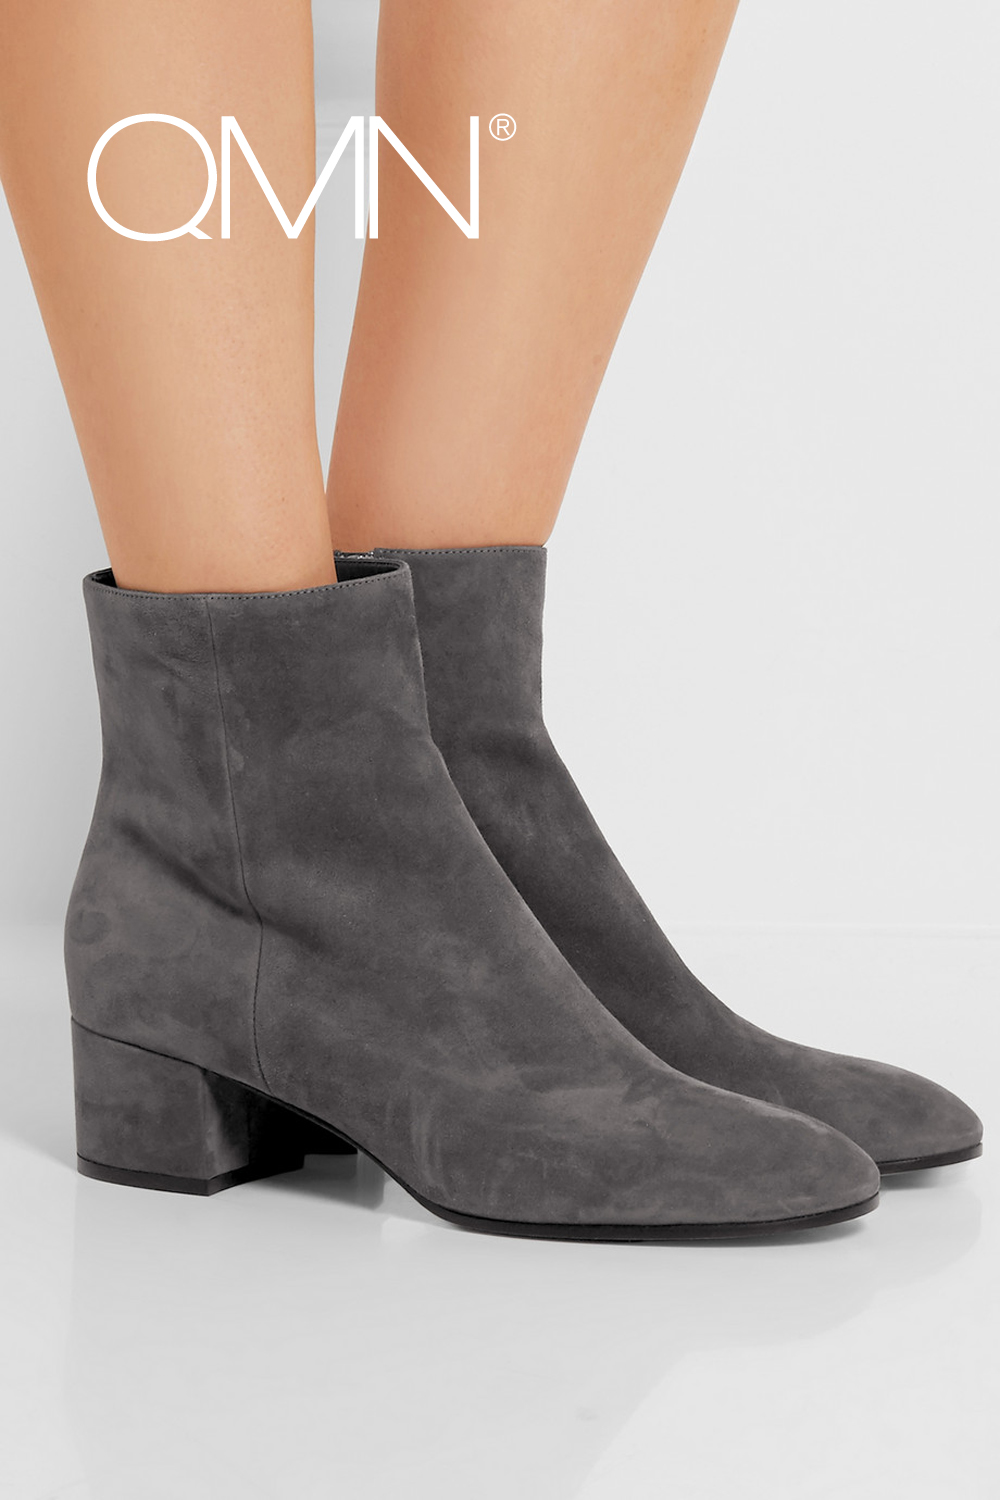 Фотография QMN suede ankle boots for women Leather Fashion Boots Zip Shoes Woman Booties Botas Femininas Gray/Pink 34-39